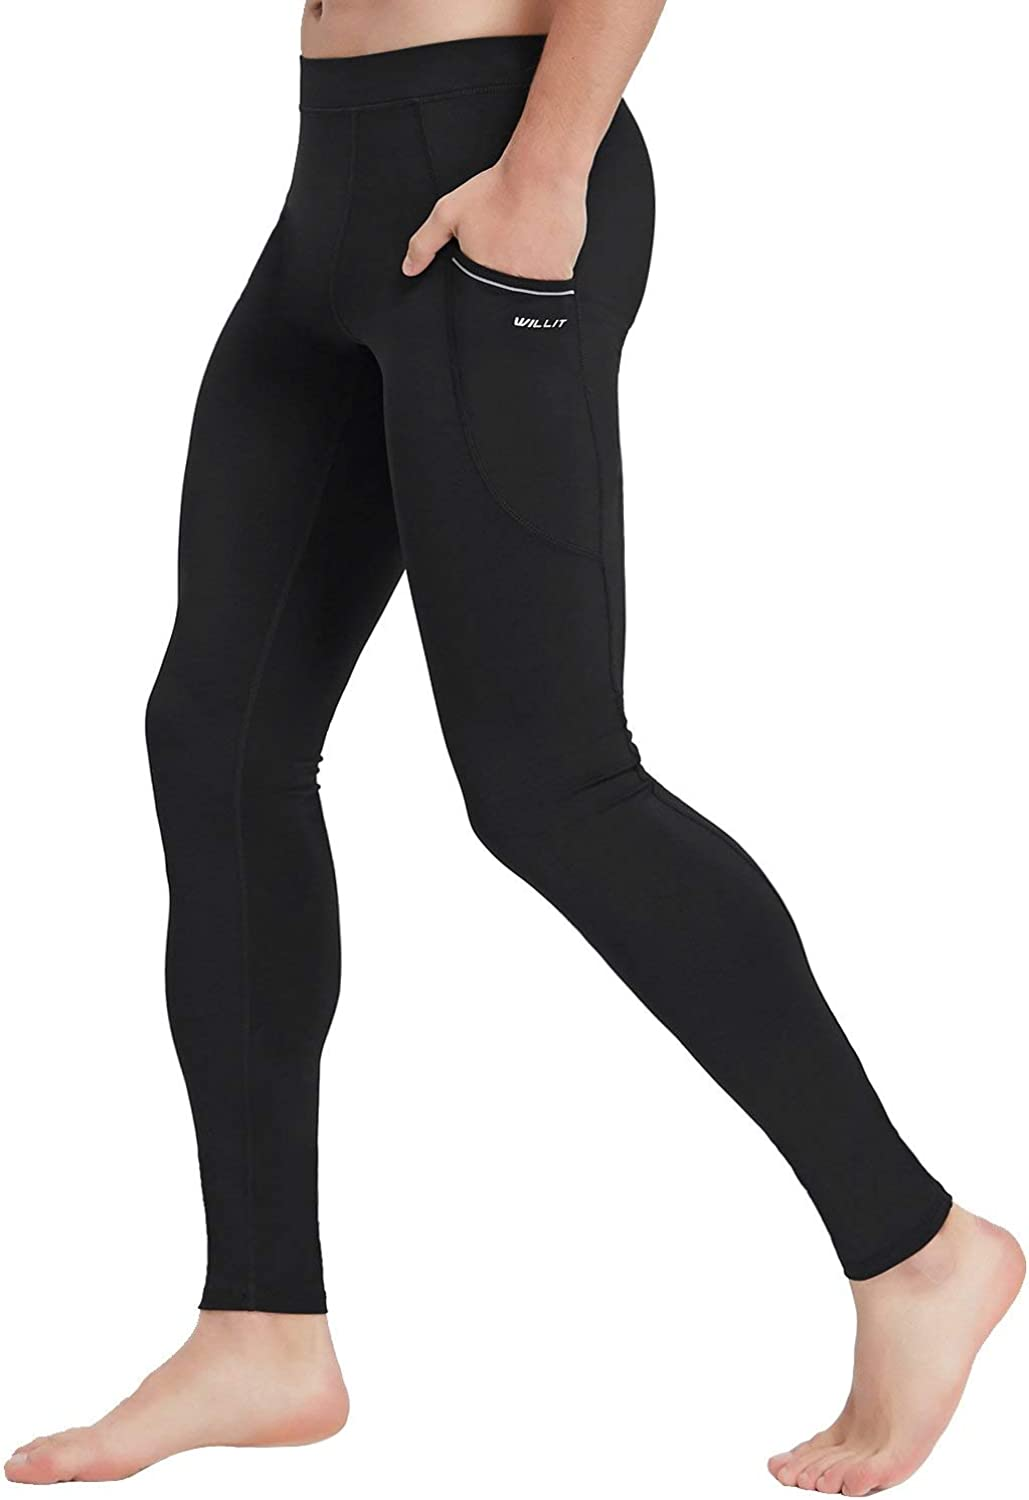 Willit Mens Active Yoga Leggings Pants Dance Tights Side Pockets Gym Training Workout Pants Quick Dry